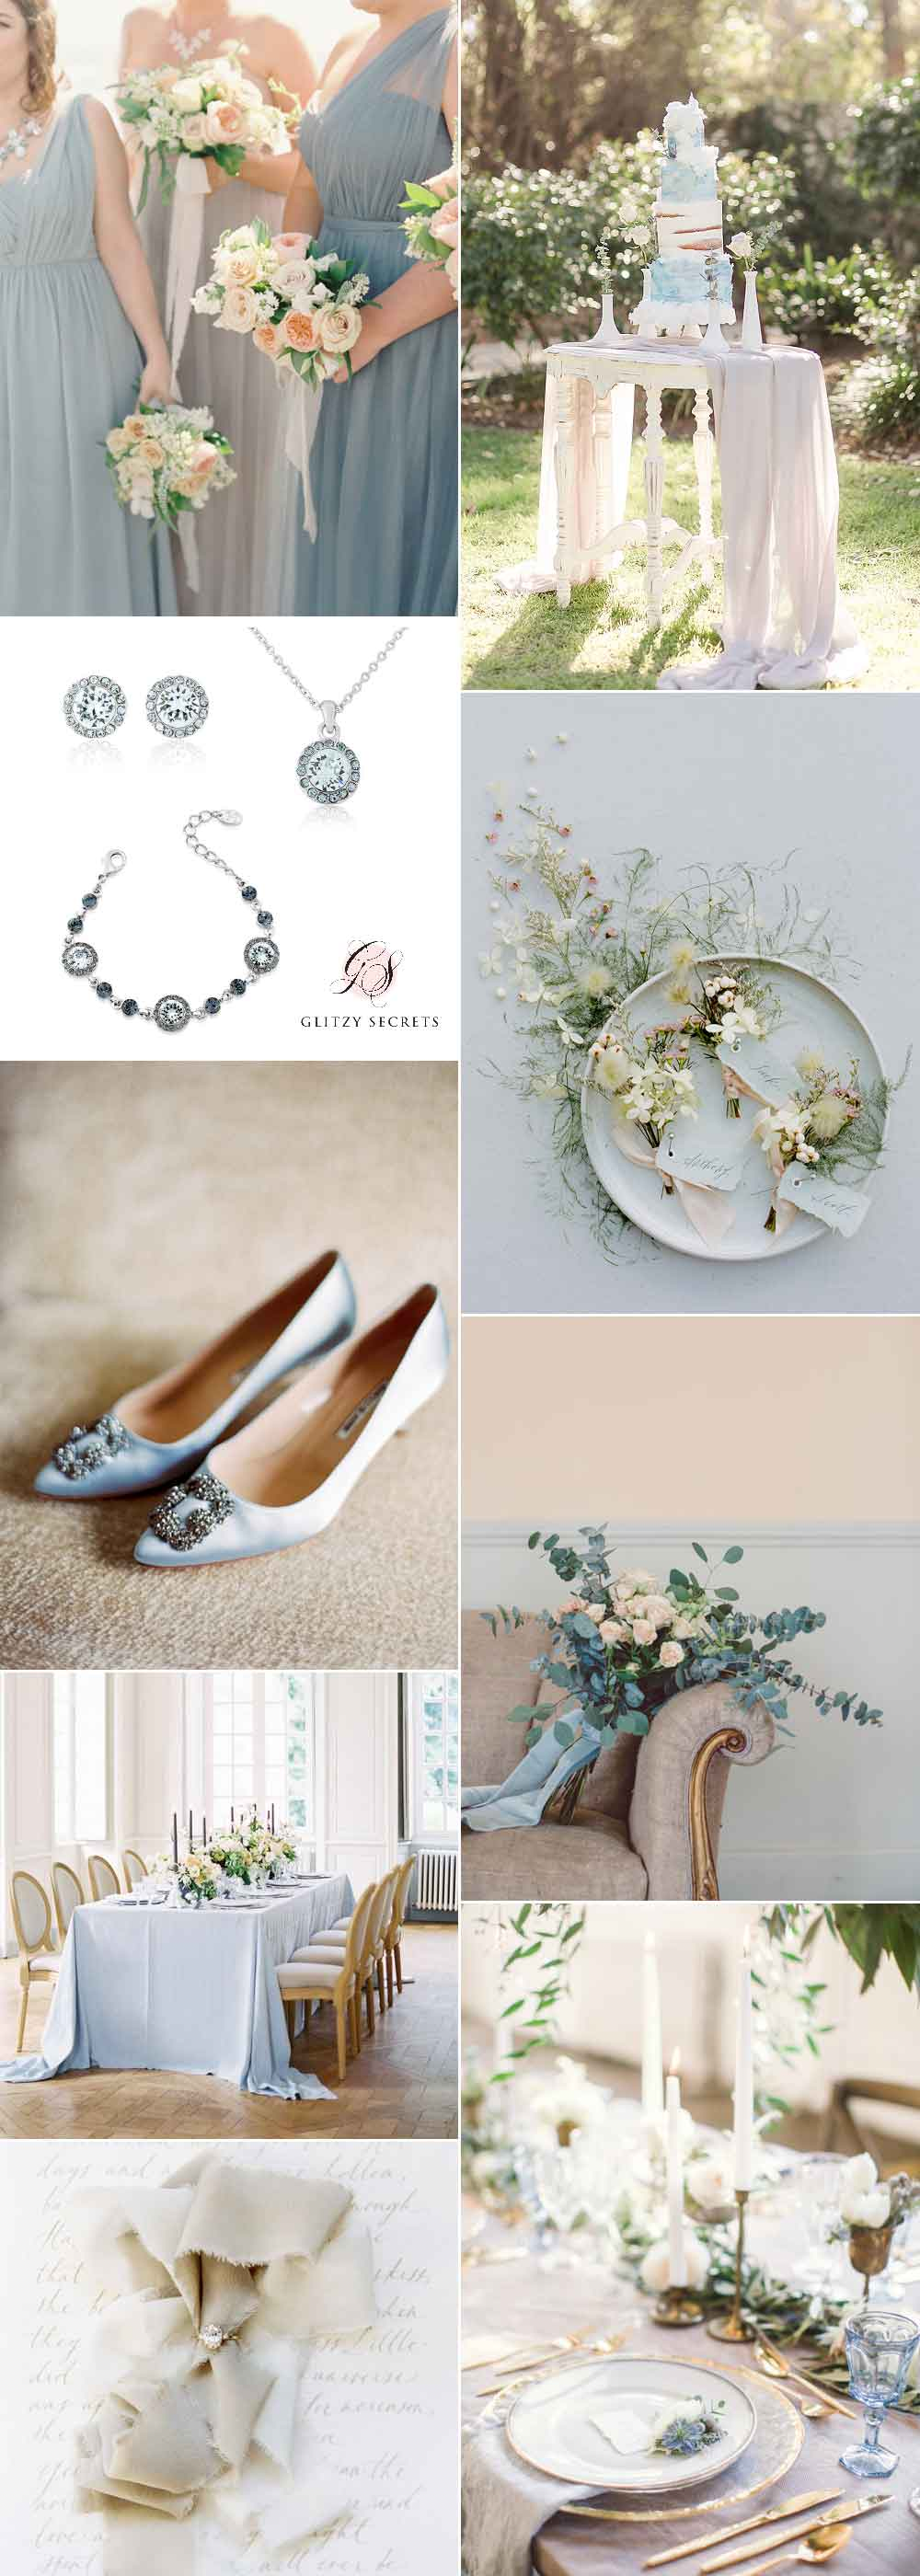 Blue and Beige wedding inspiration